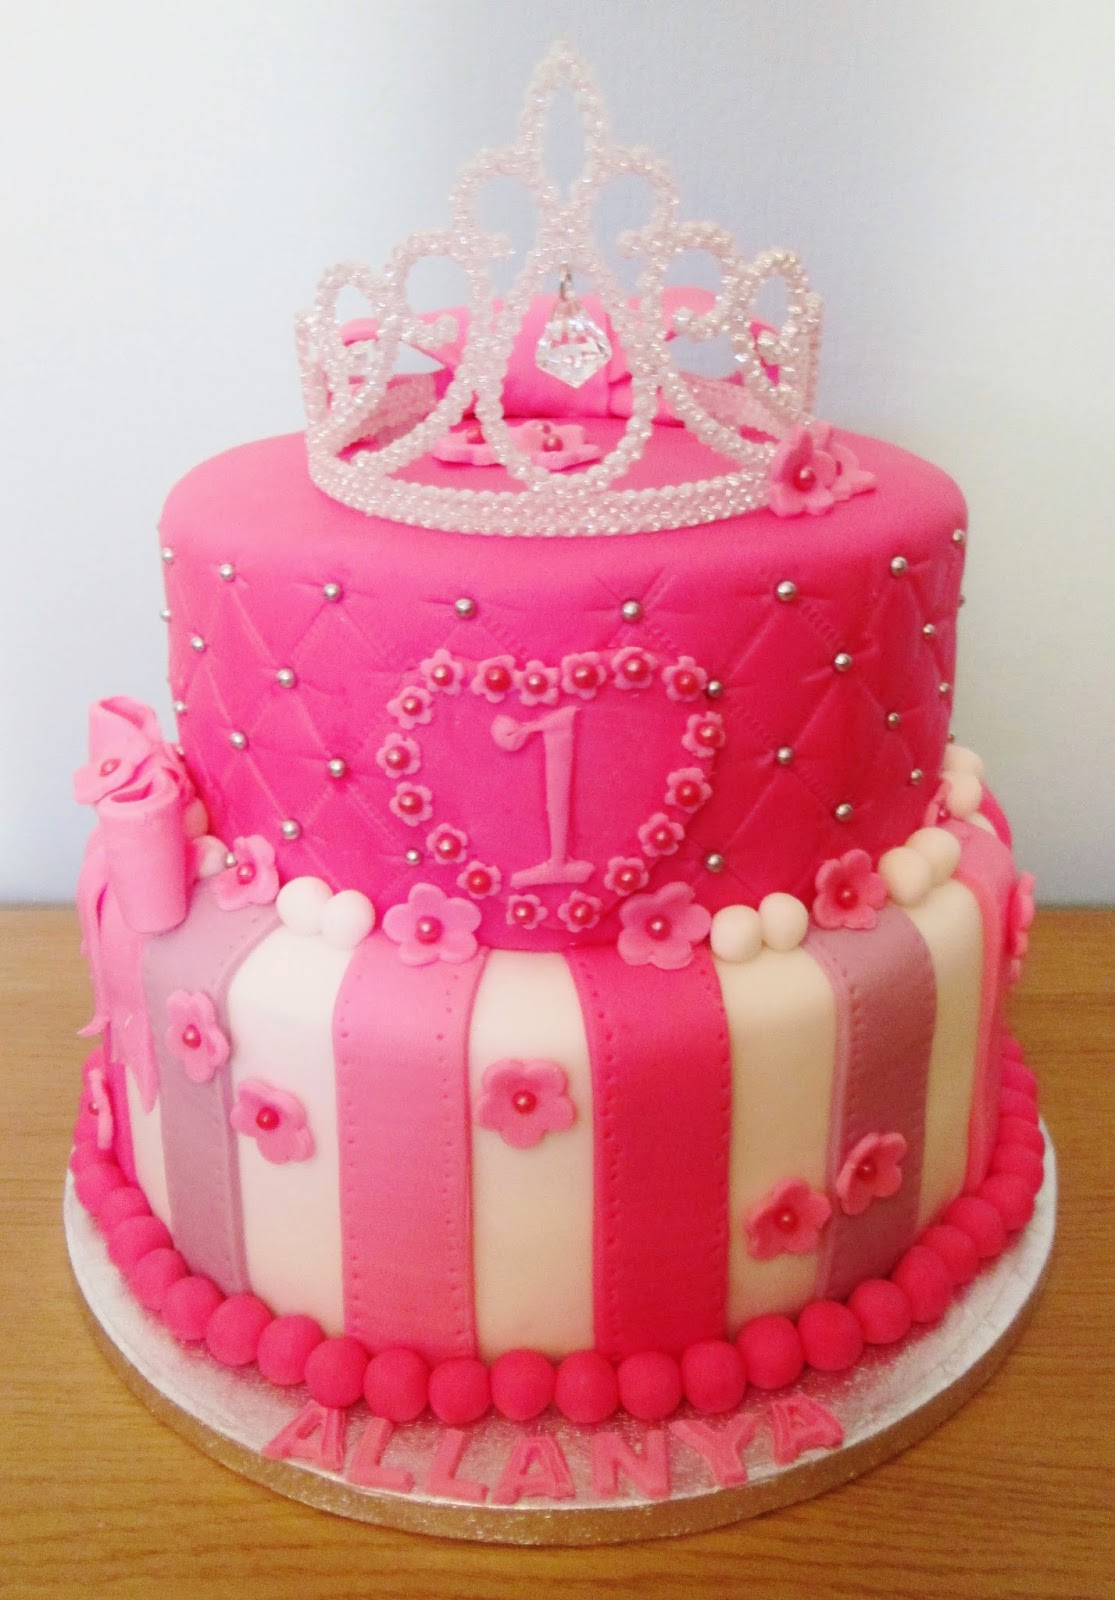 Basic Birthday Cake Decorating Ideas